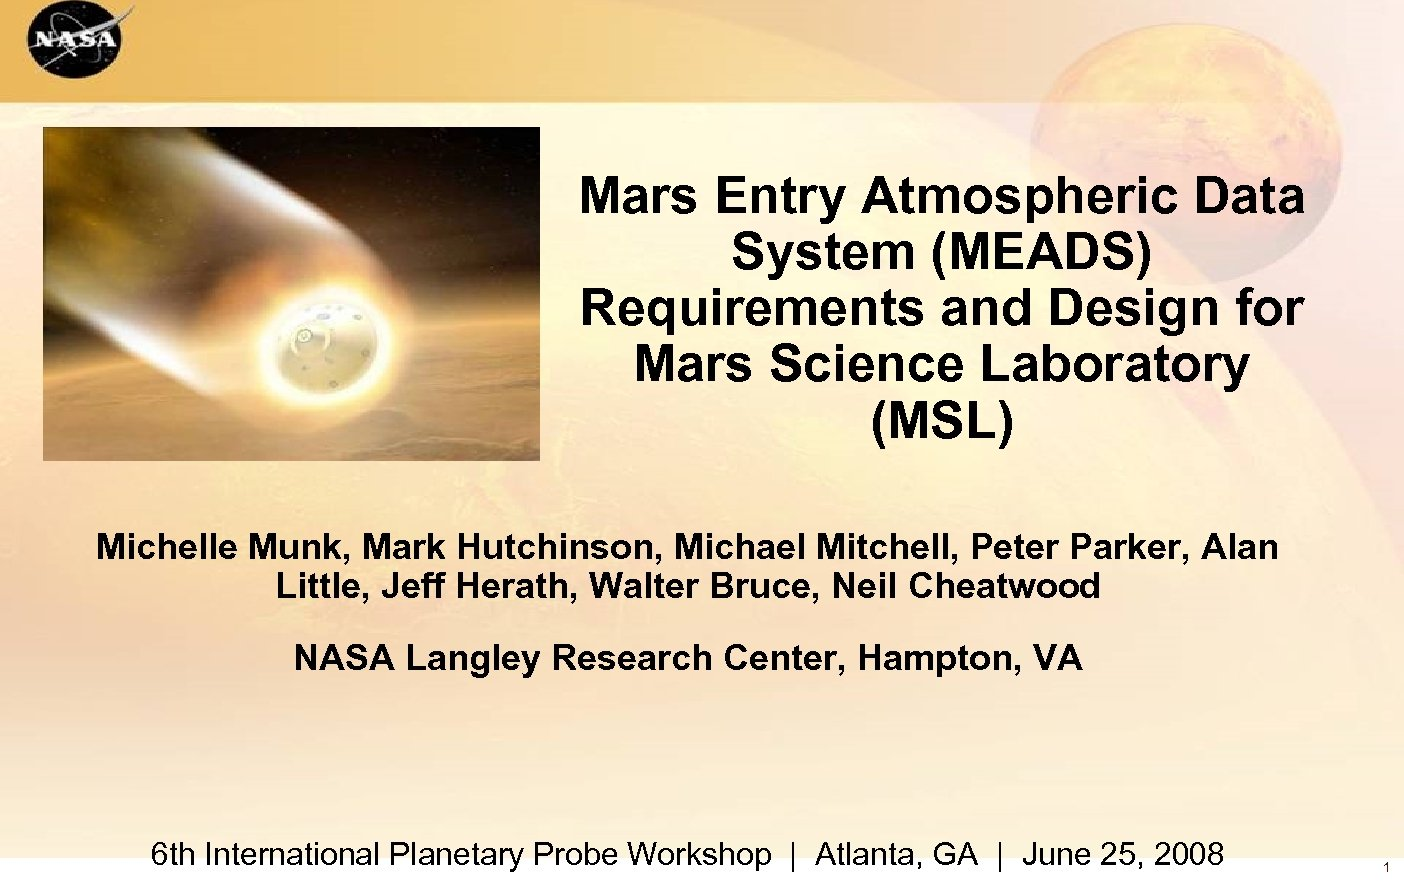 Mars Entry Atmospheric Data System (MEADS) Requirements and Design for Mars Science Laboratory (MSL)